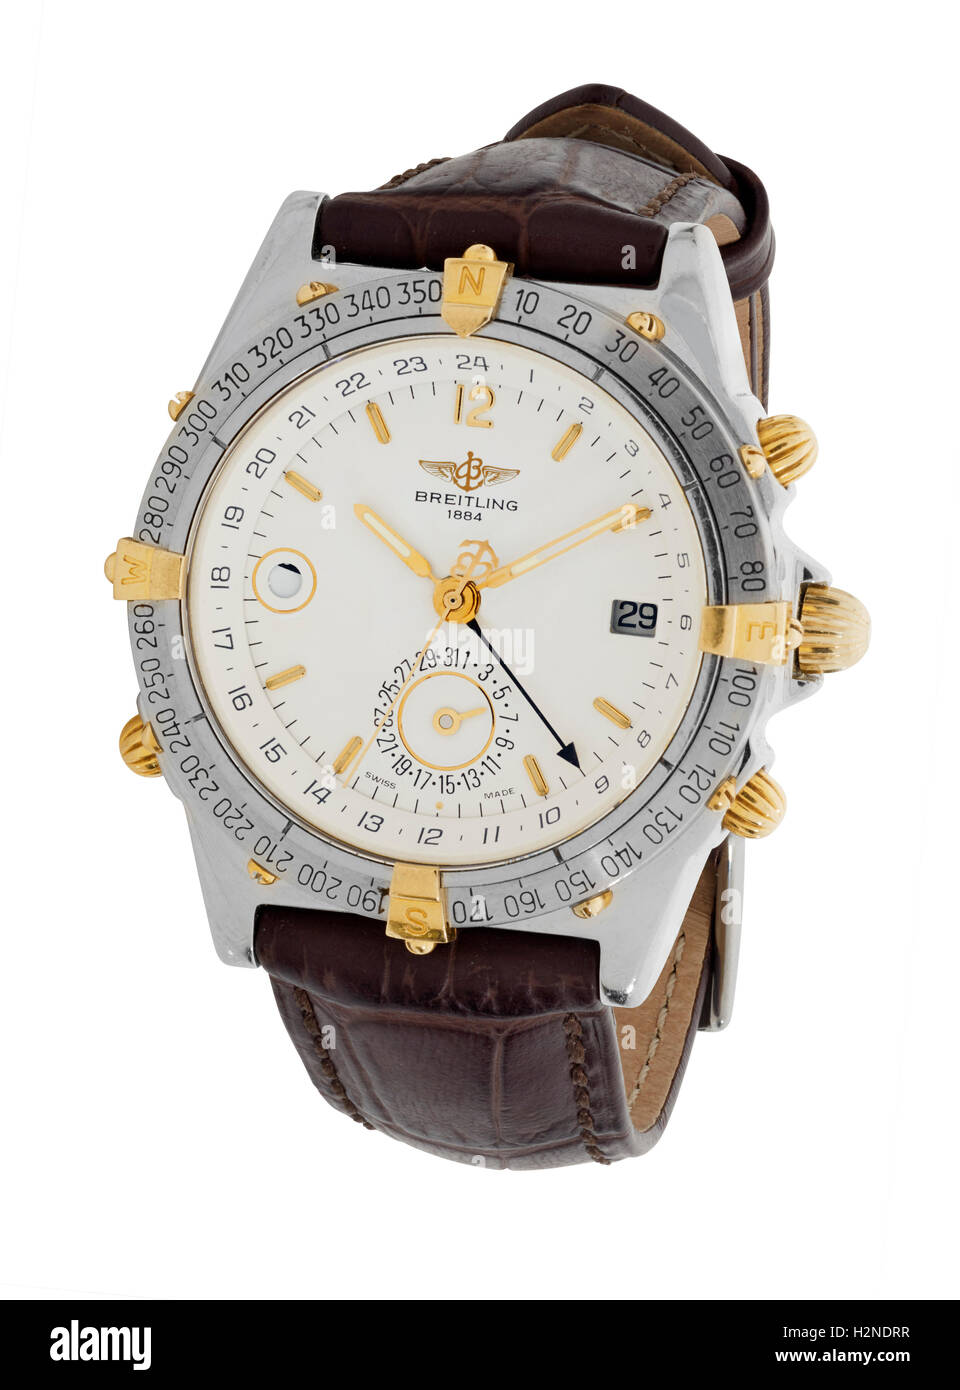 Breitling mans watch Stock Photo